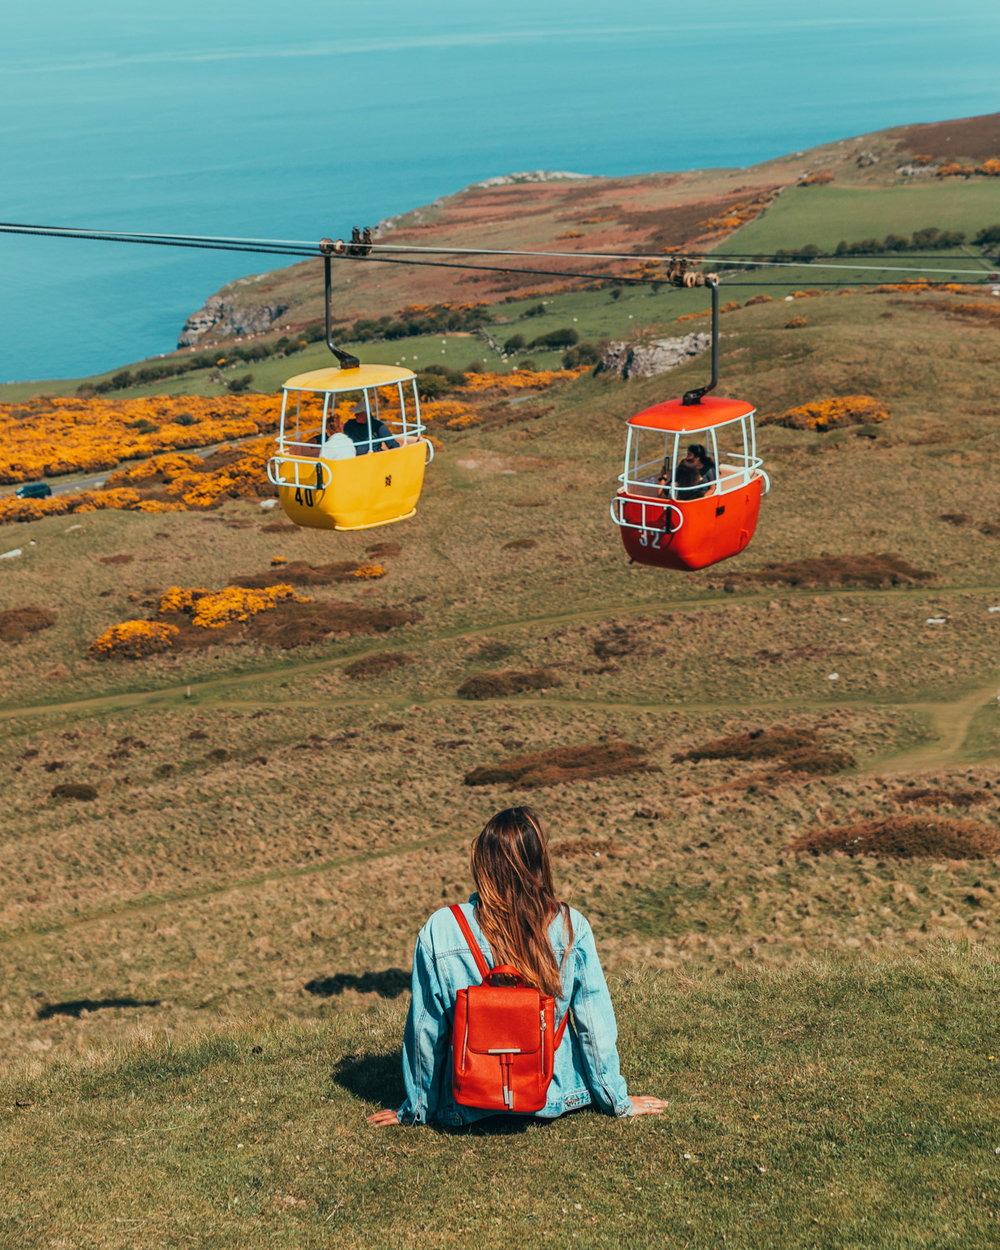 Llandudno Cable Cars // The Most Beautiful Places to Visit in Wales // #readysetjetset #wales #uk #welsh #travel #photospots #blogpost